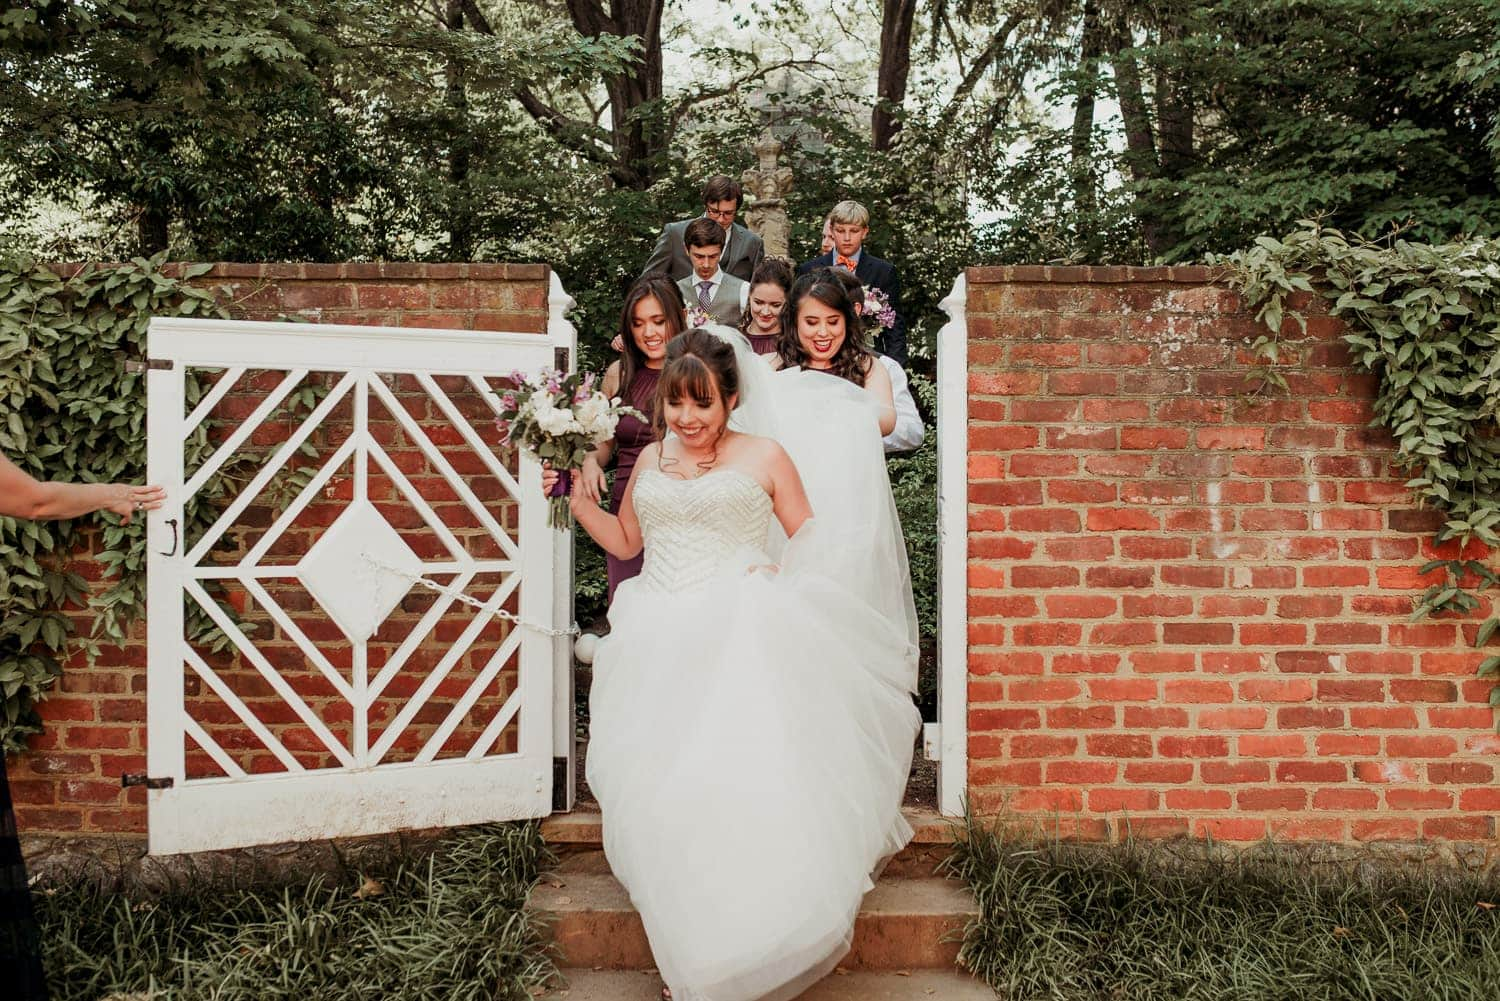 The bride is walking down steps with a smile on her face. The whole wedding party is behind her.